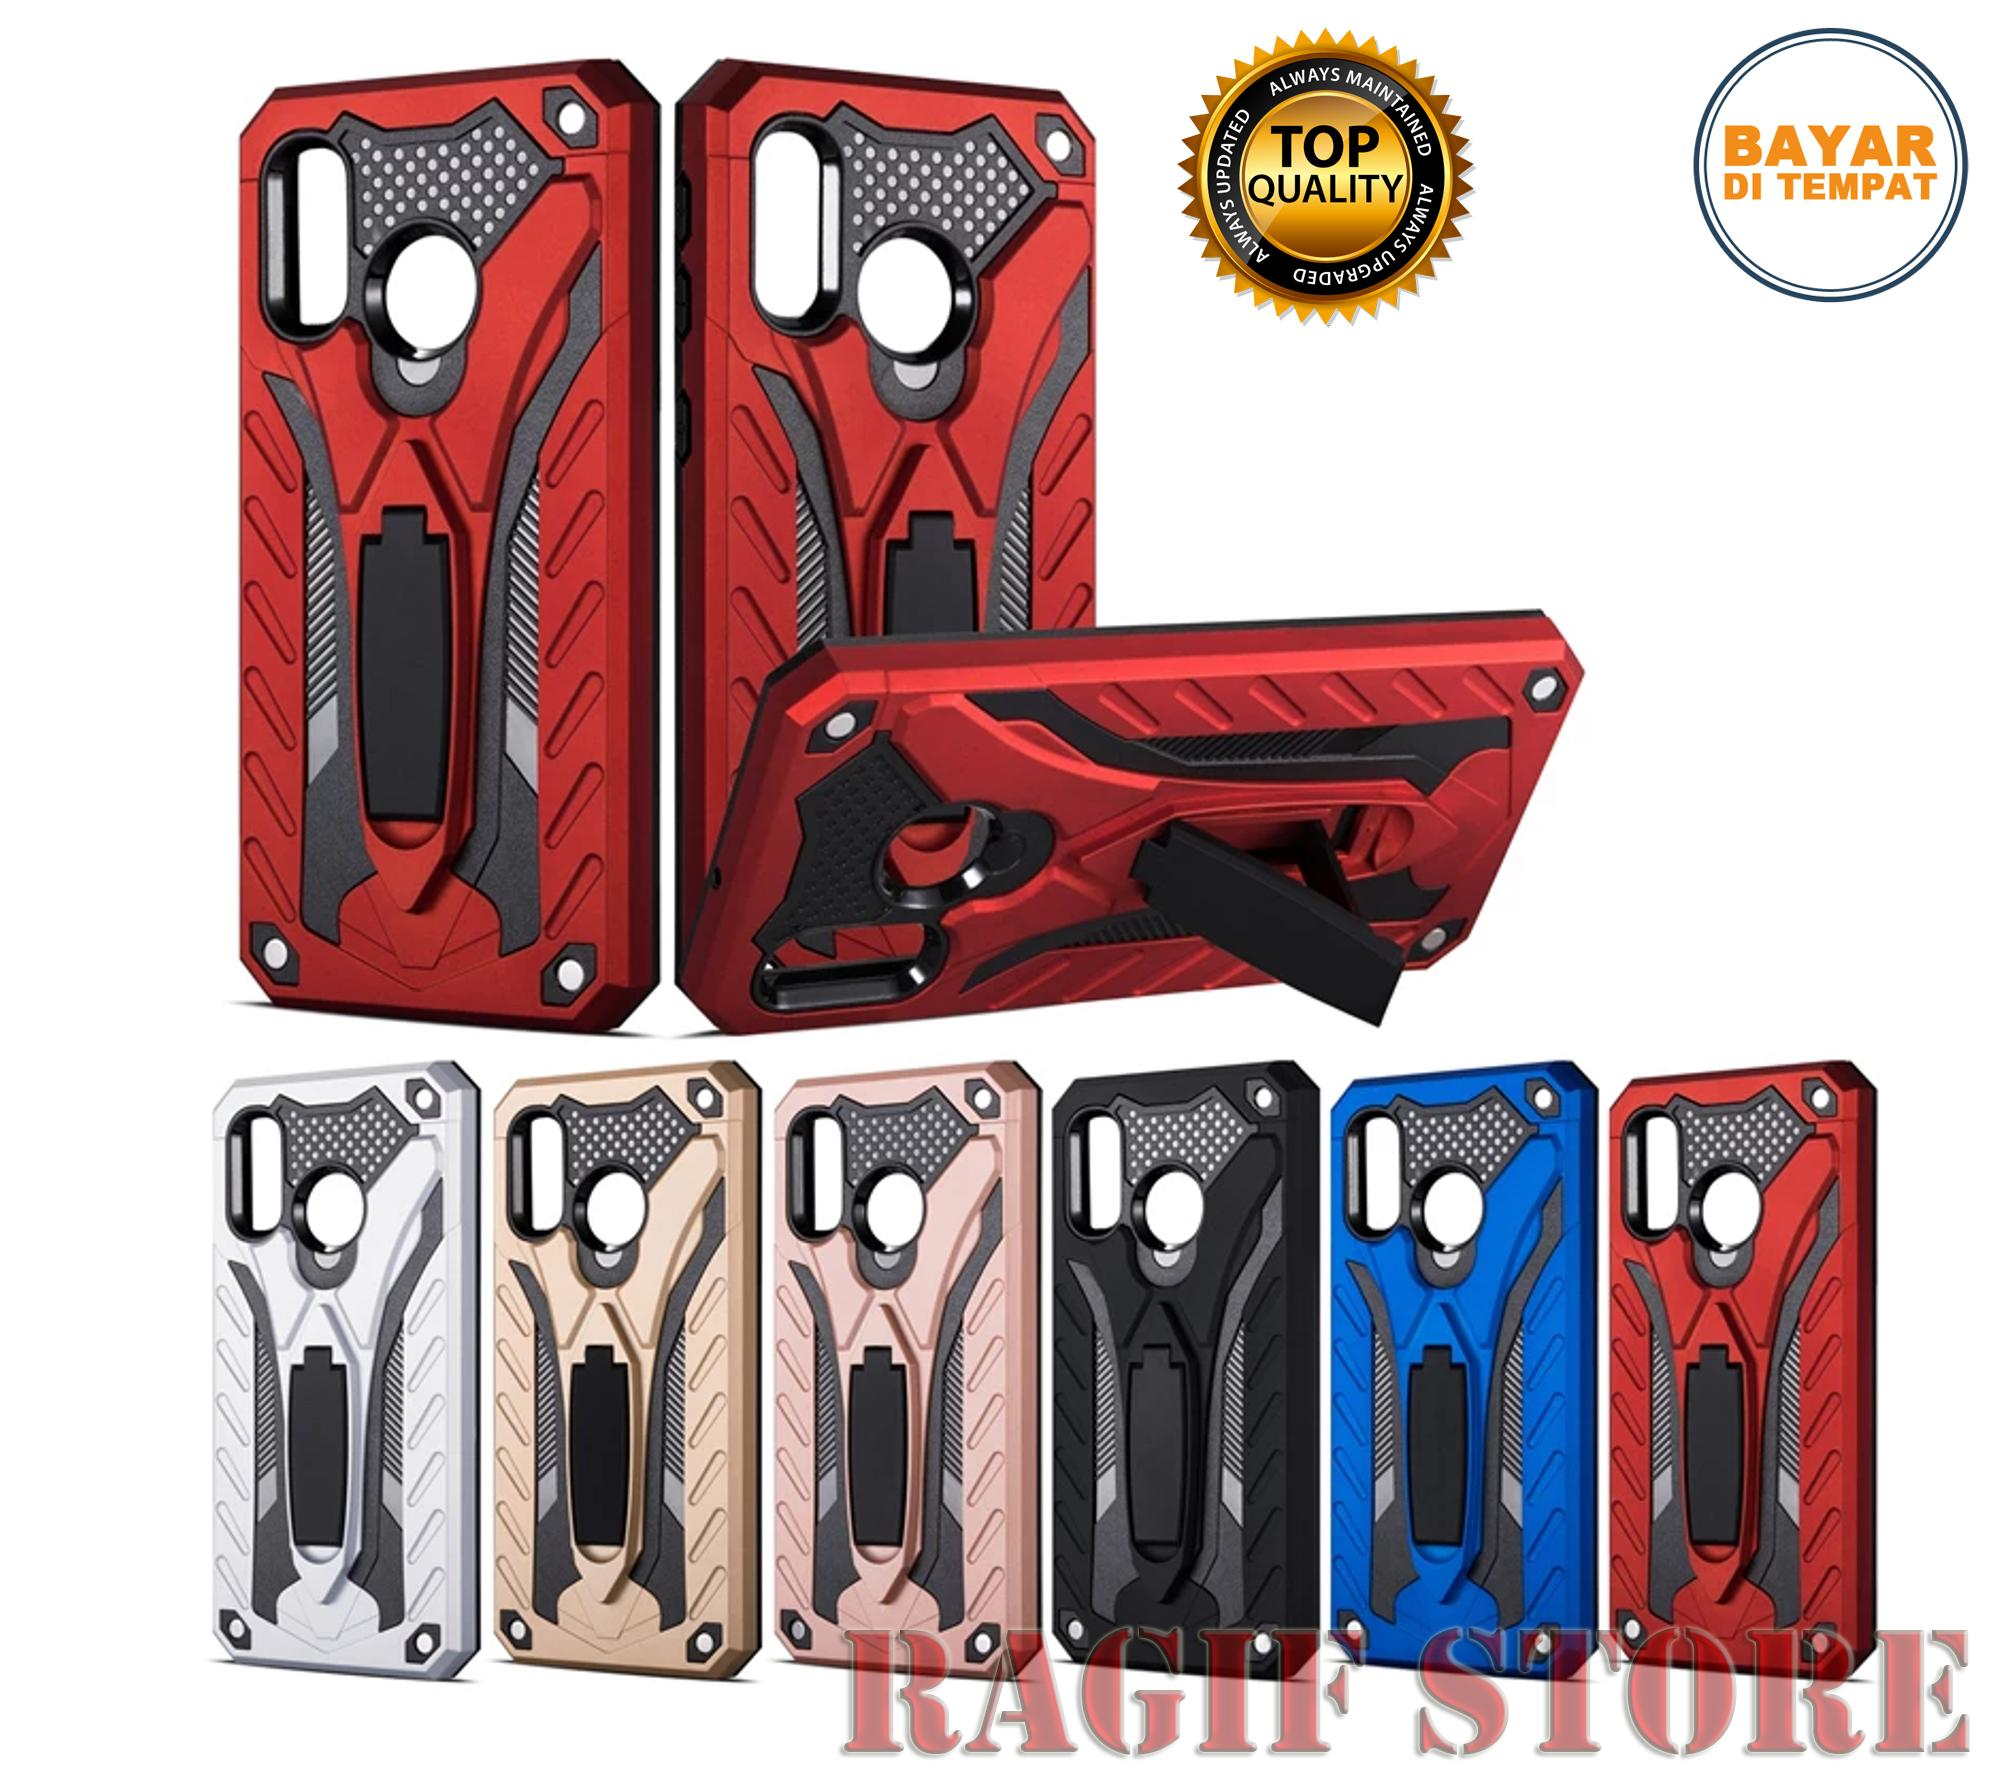 Mika/Hardcase Samsung A10S Case/Casing Model Transformers Standing